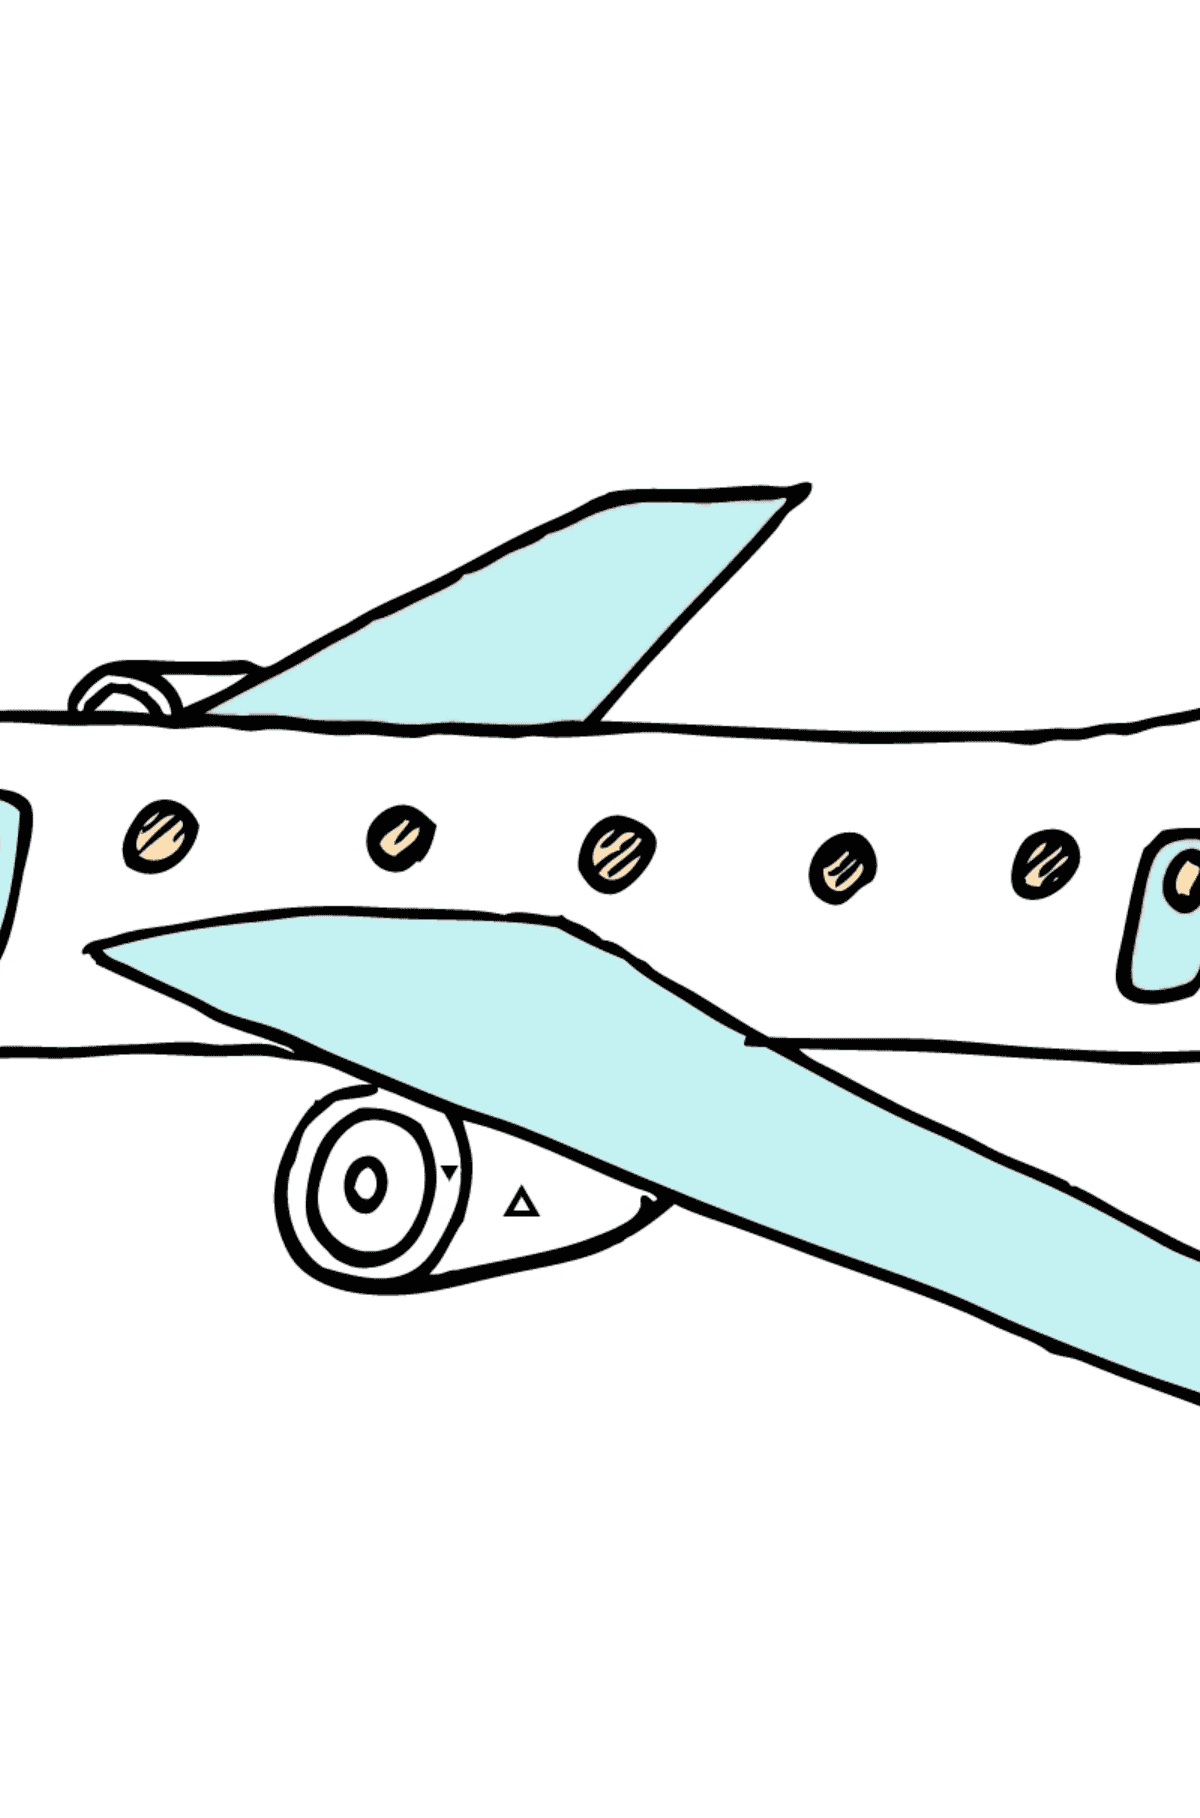 Coloring Page - A Commercial Jet - Coloring by Symbols for Kids